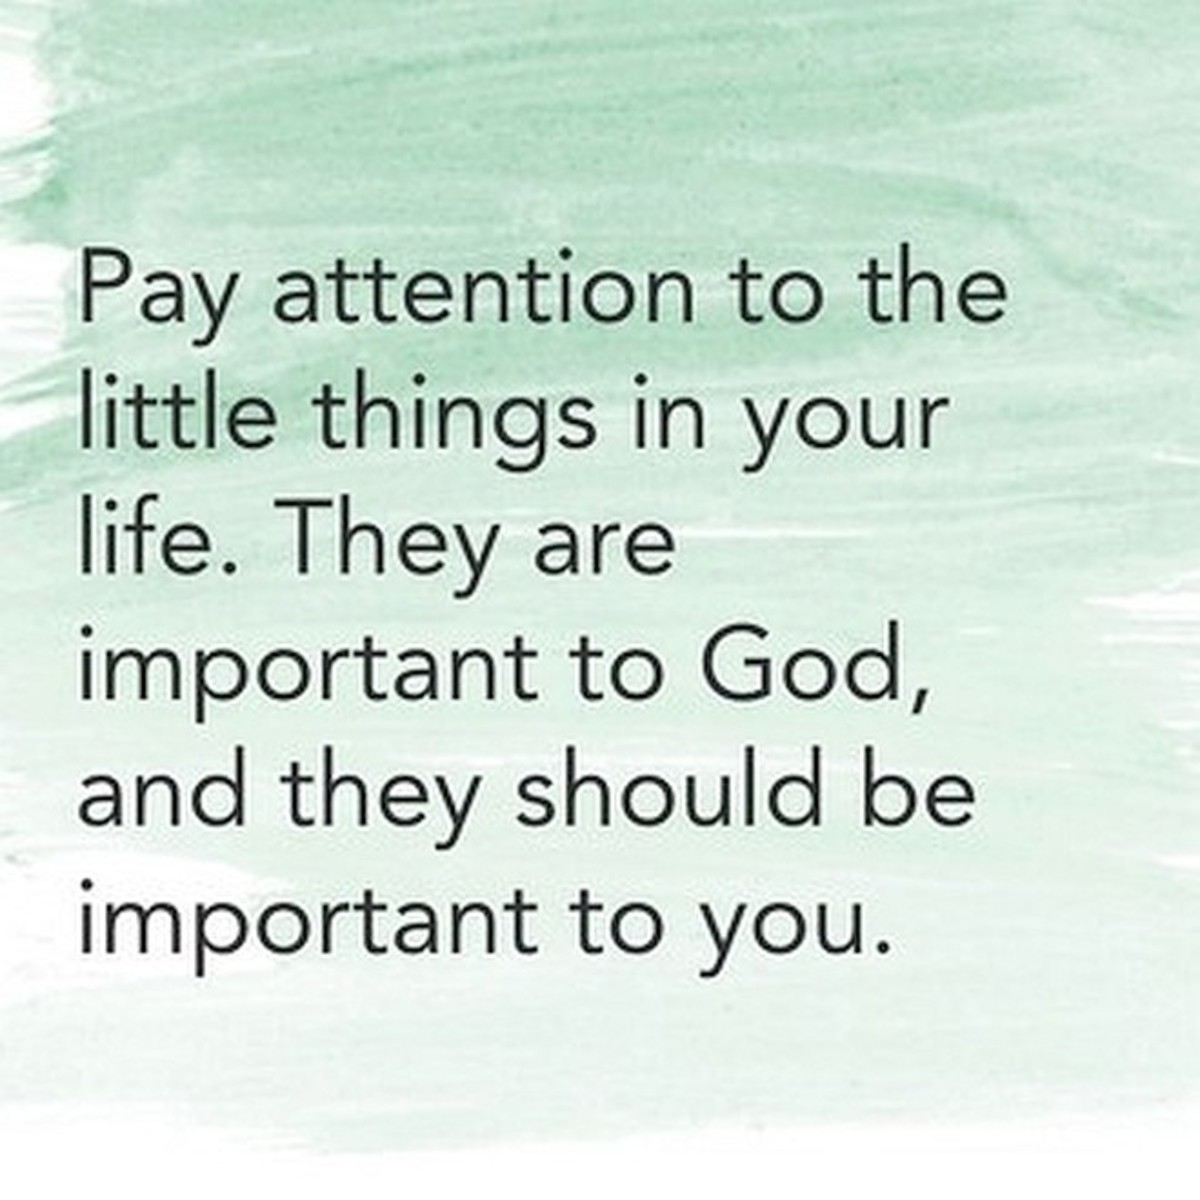 Little things need your attention. Pay attention to little things.